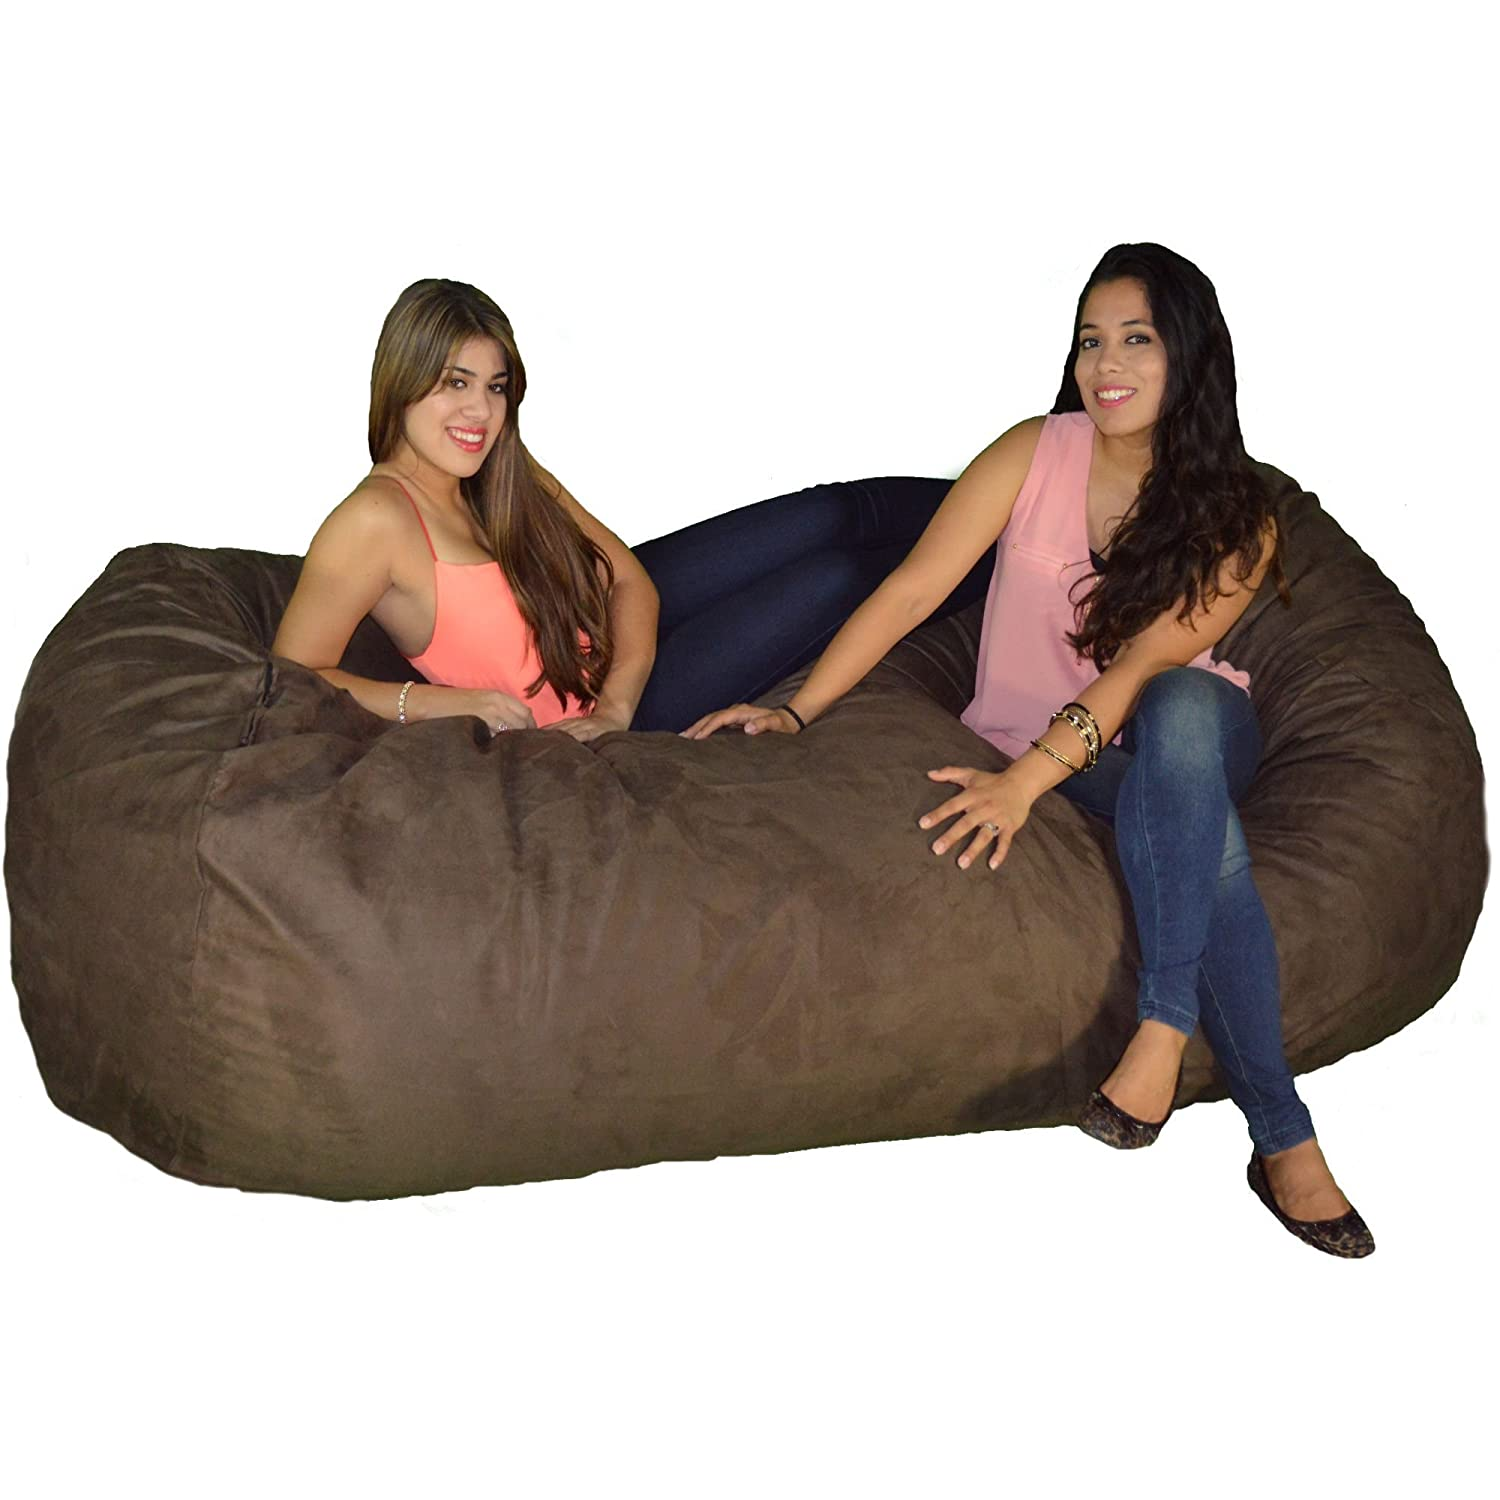 Large Bean Bag Chair 8 Foot Cozy Beanbag Filled with 68 Lbs of Premium Cozy Foam for Ultimate Comfort